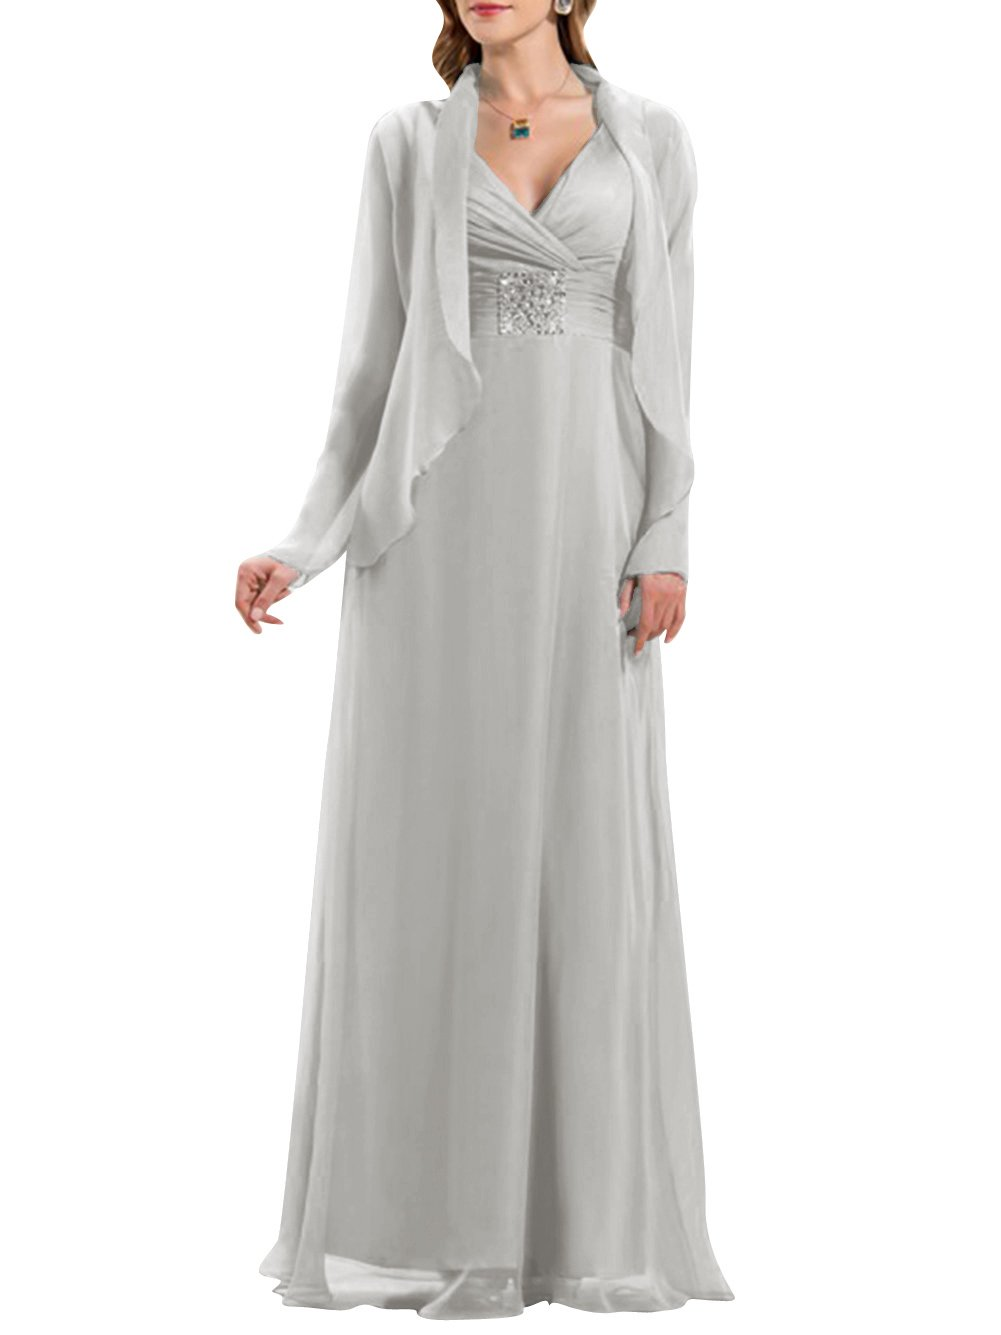 037ff9214c7e2 ModeC Long V-Neck Chiffon Beaded Mother of The Bride Formal Dress with  Jacket Silver US20W